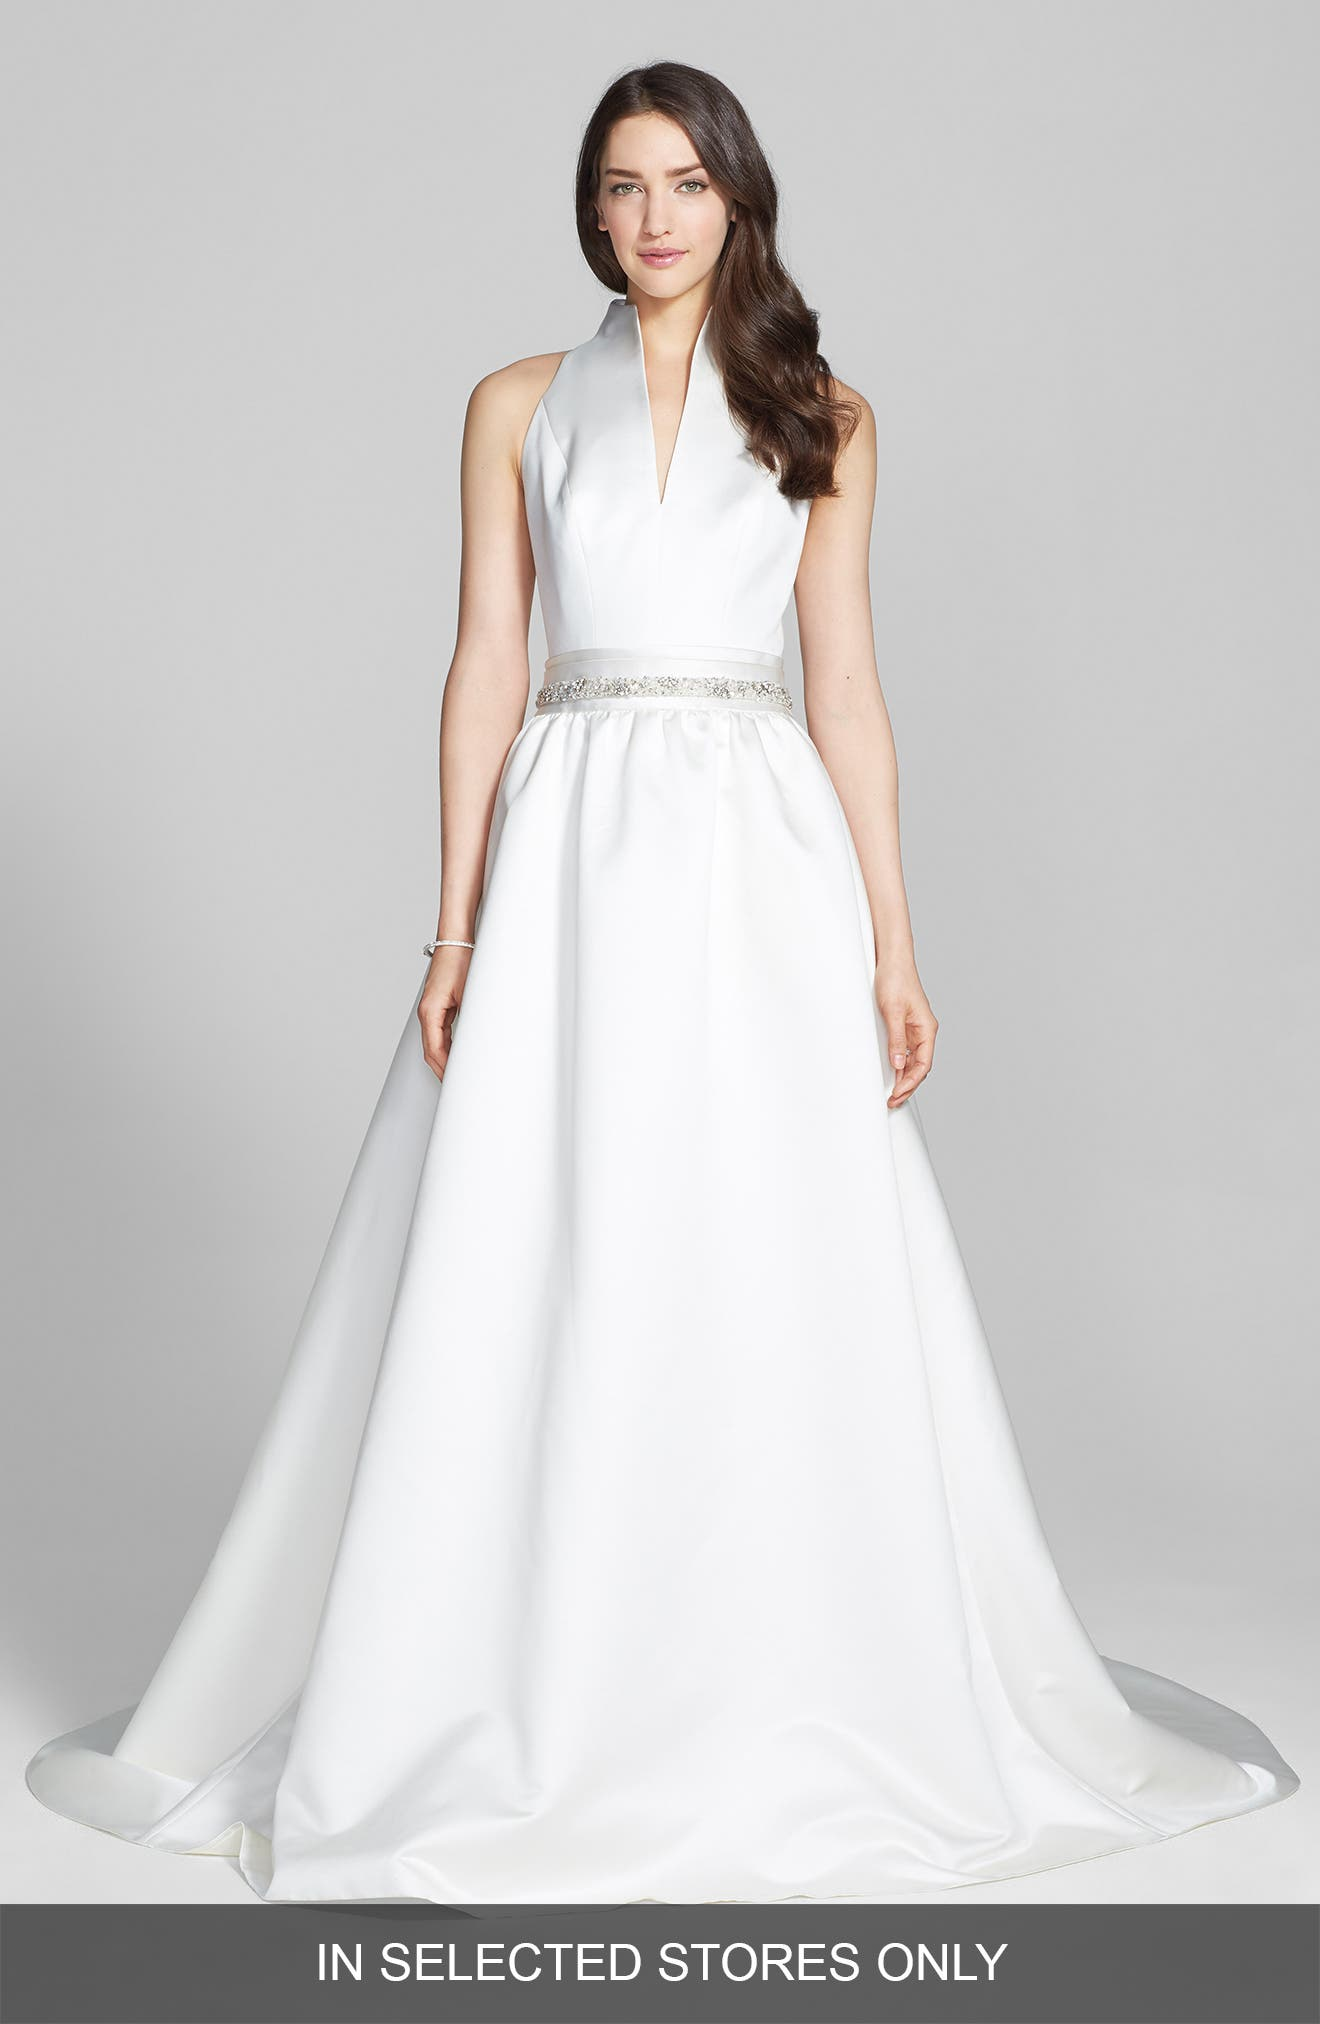 Main Image - Jesús Peiró Satin Dress with Embellished Waist Overskirt (In Stores Only)